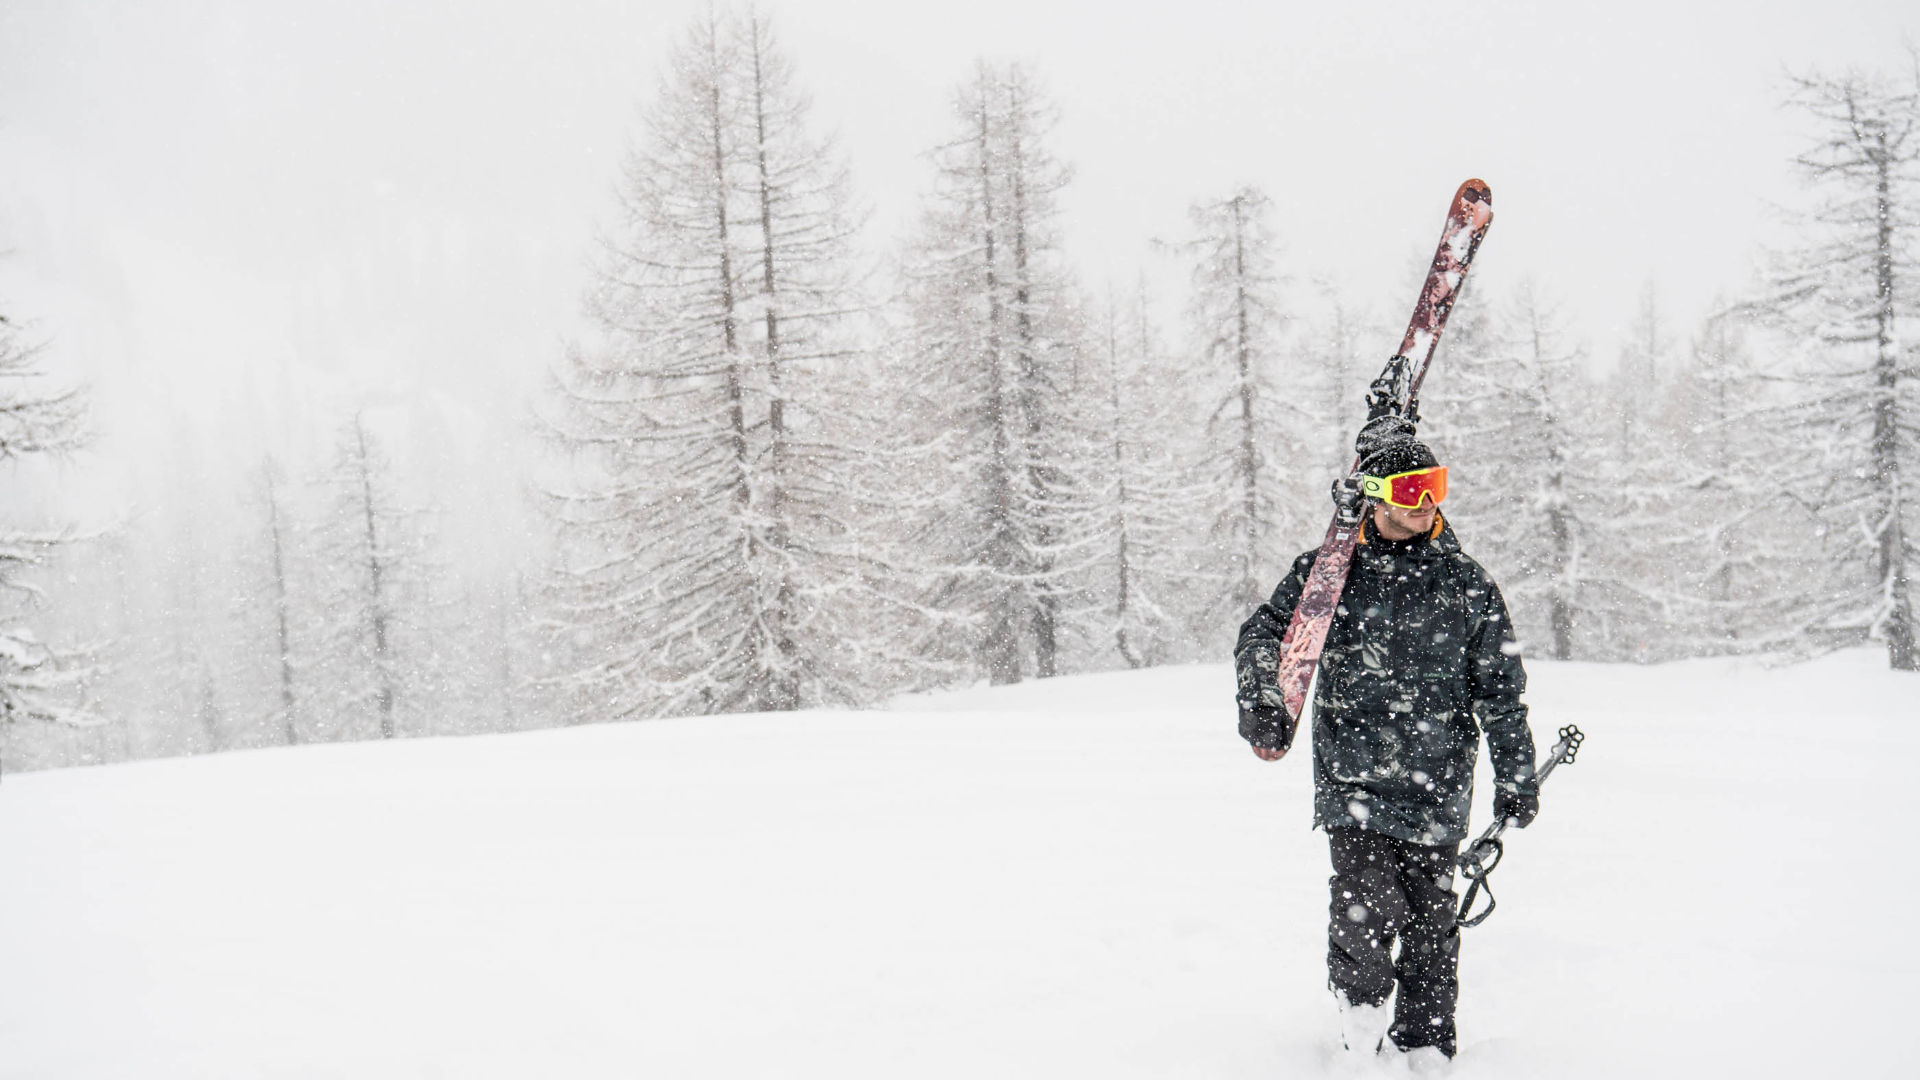 A skier hinking in heavy snowfall with a warm jacket